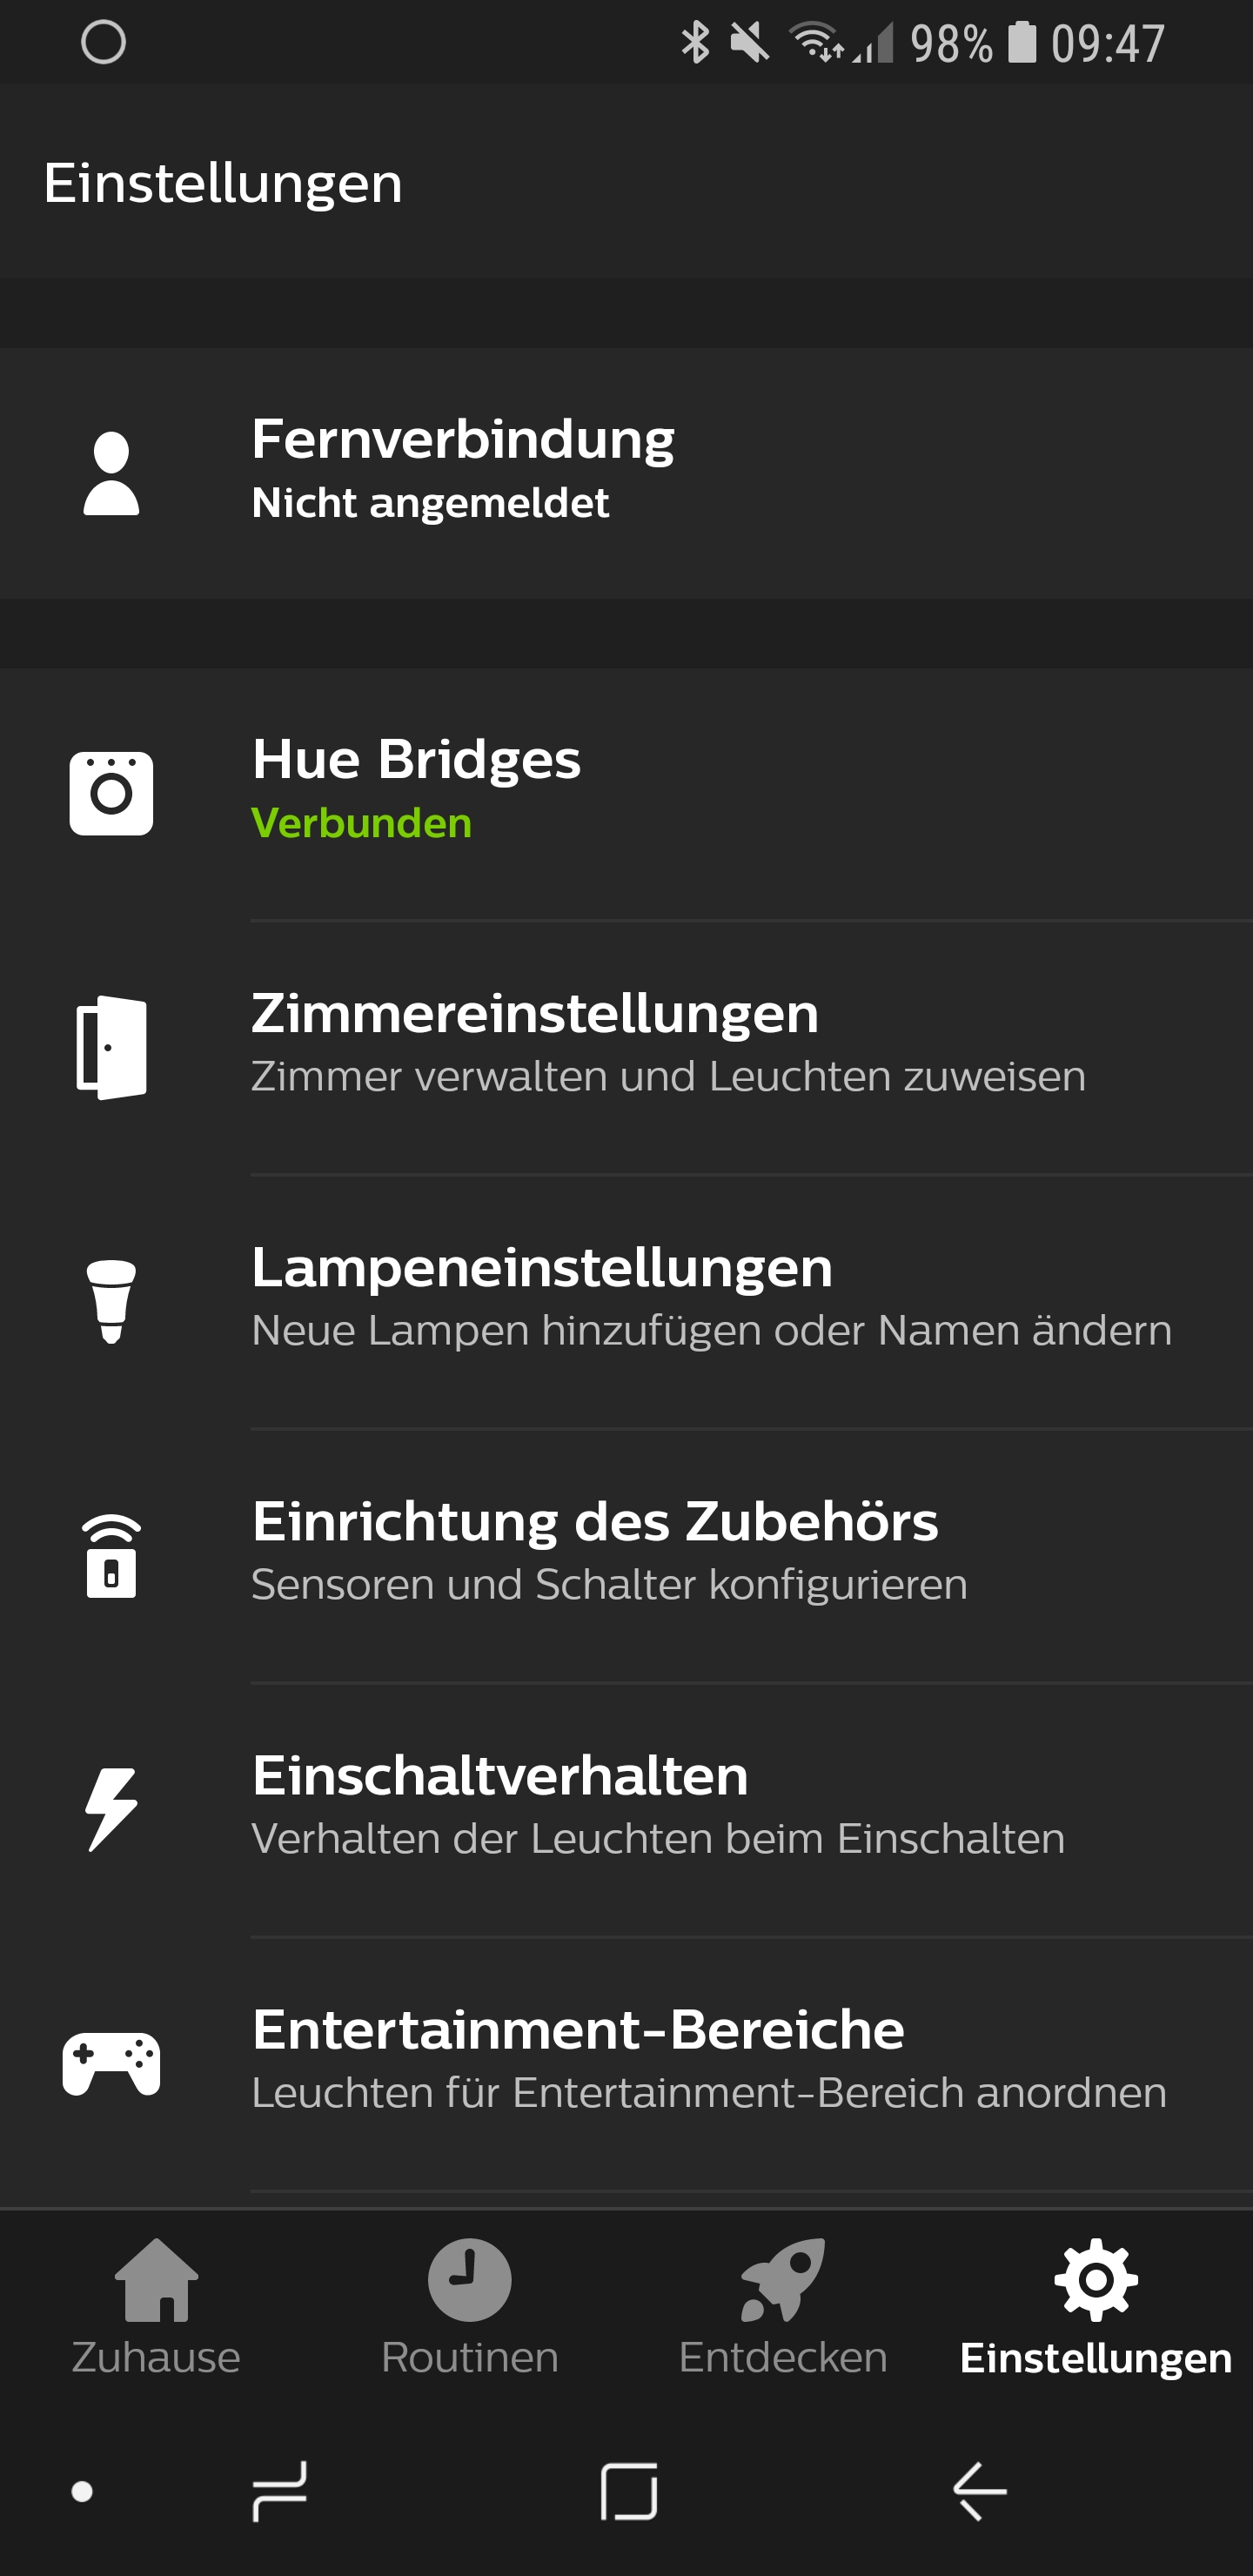 Osram-Smart-Plug-mit-Philips-Hue-Bridge-koppeln-2